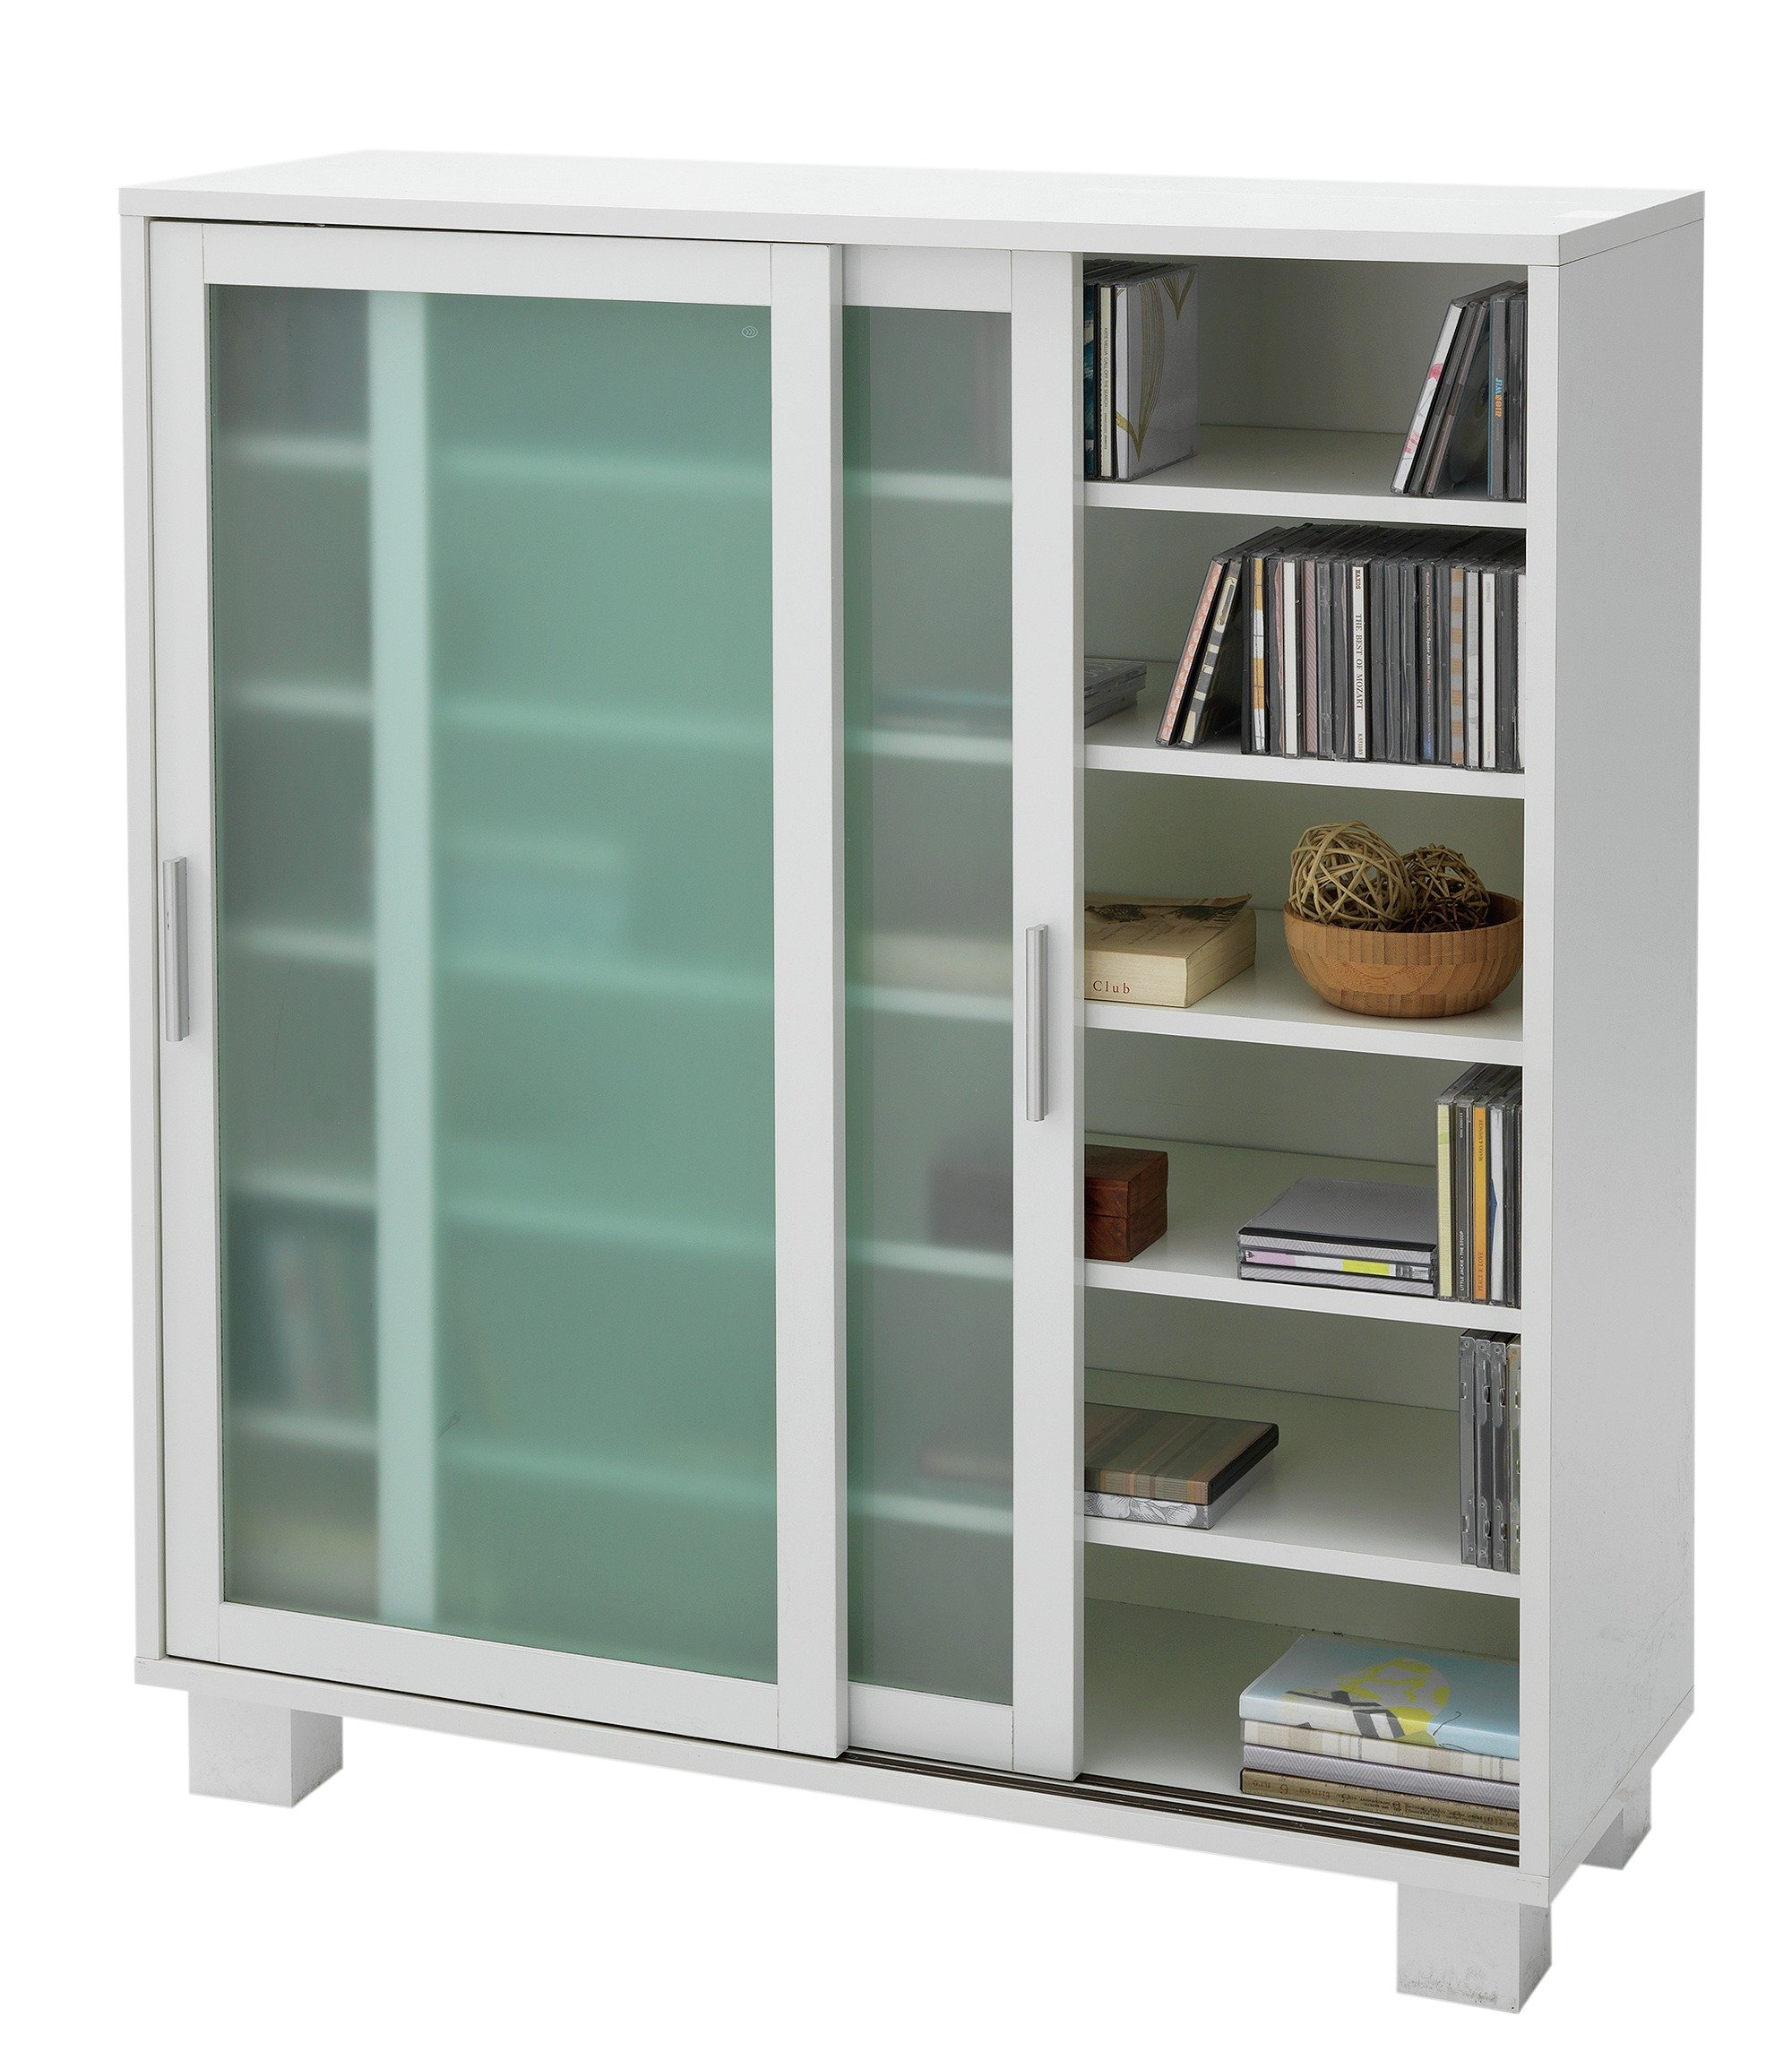 Sale On Hygena Tulsa Shoe Storage Cabinet Gloss White